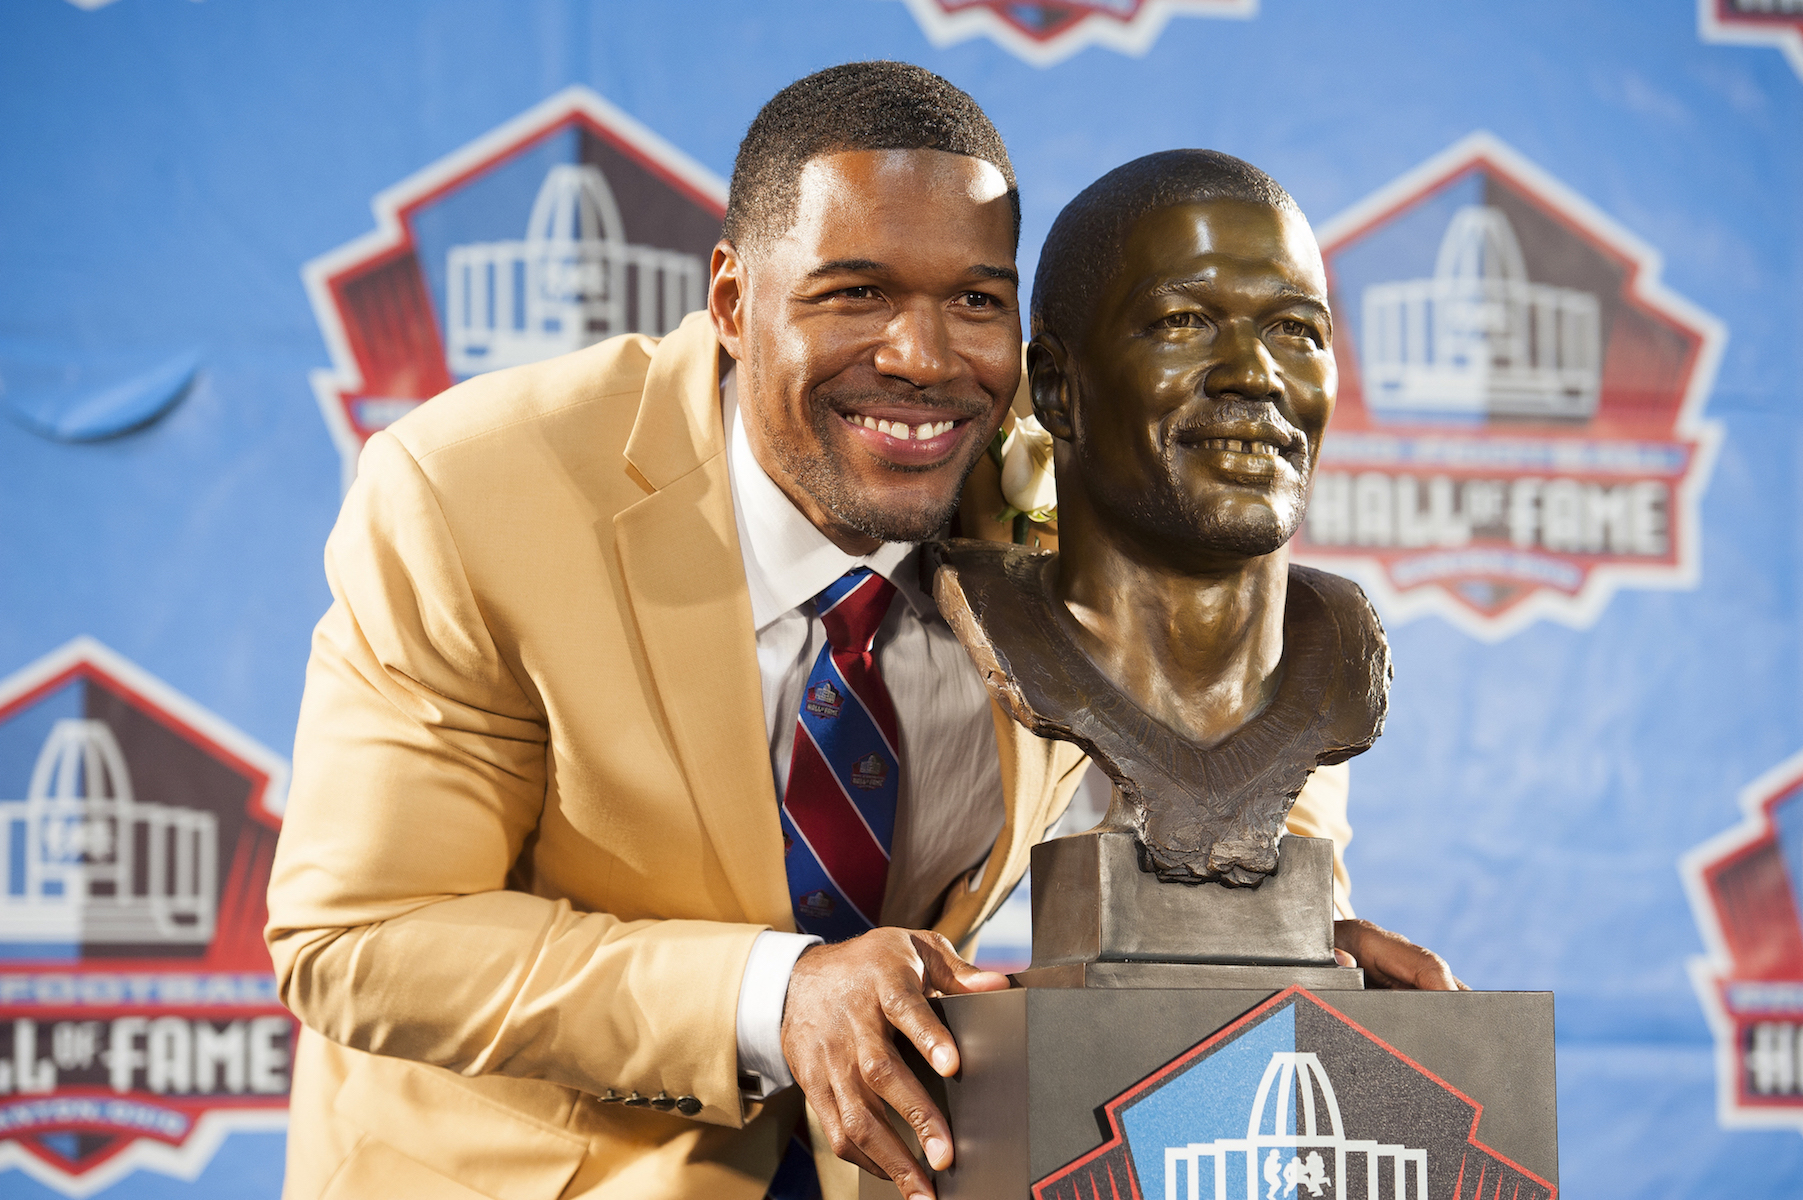 Whether you know him from the NFL or television, Michael Strahan is famous for the gap in his teeth.